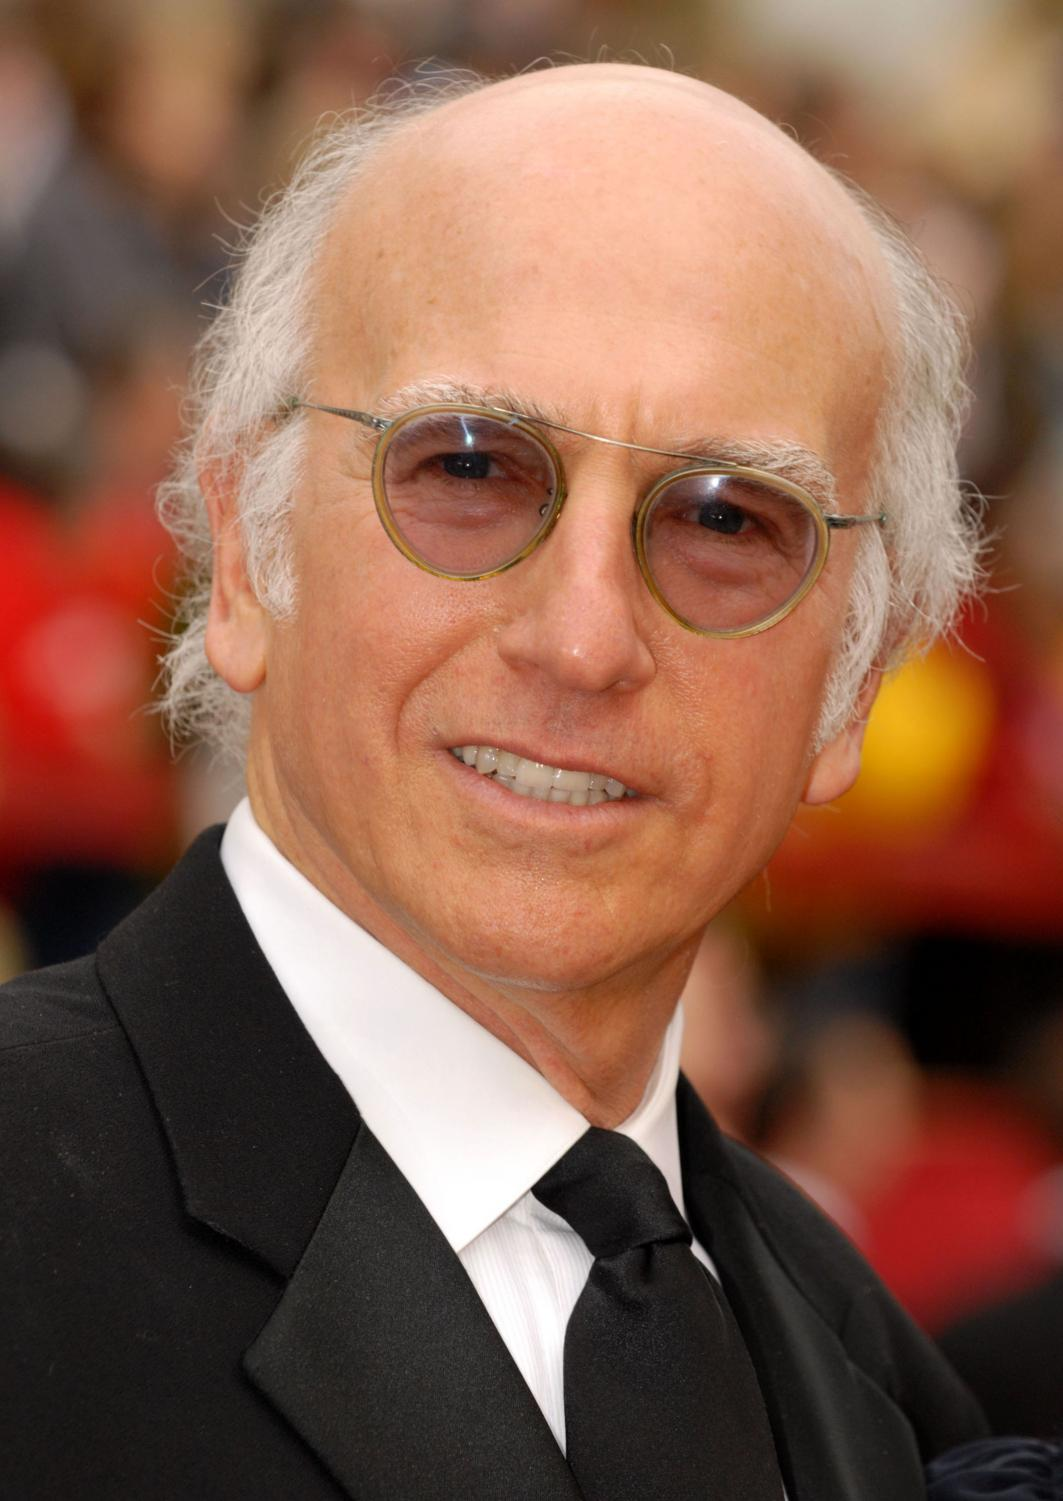 Larry David's remark about the Holocaust gave rise to the questioning of what should and shouldn't be joked about.